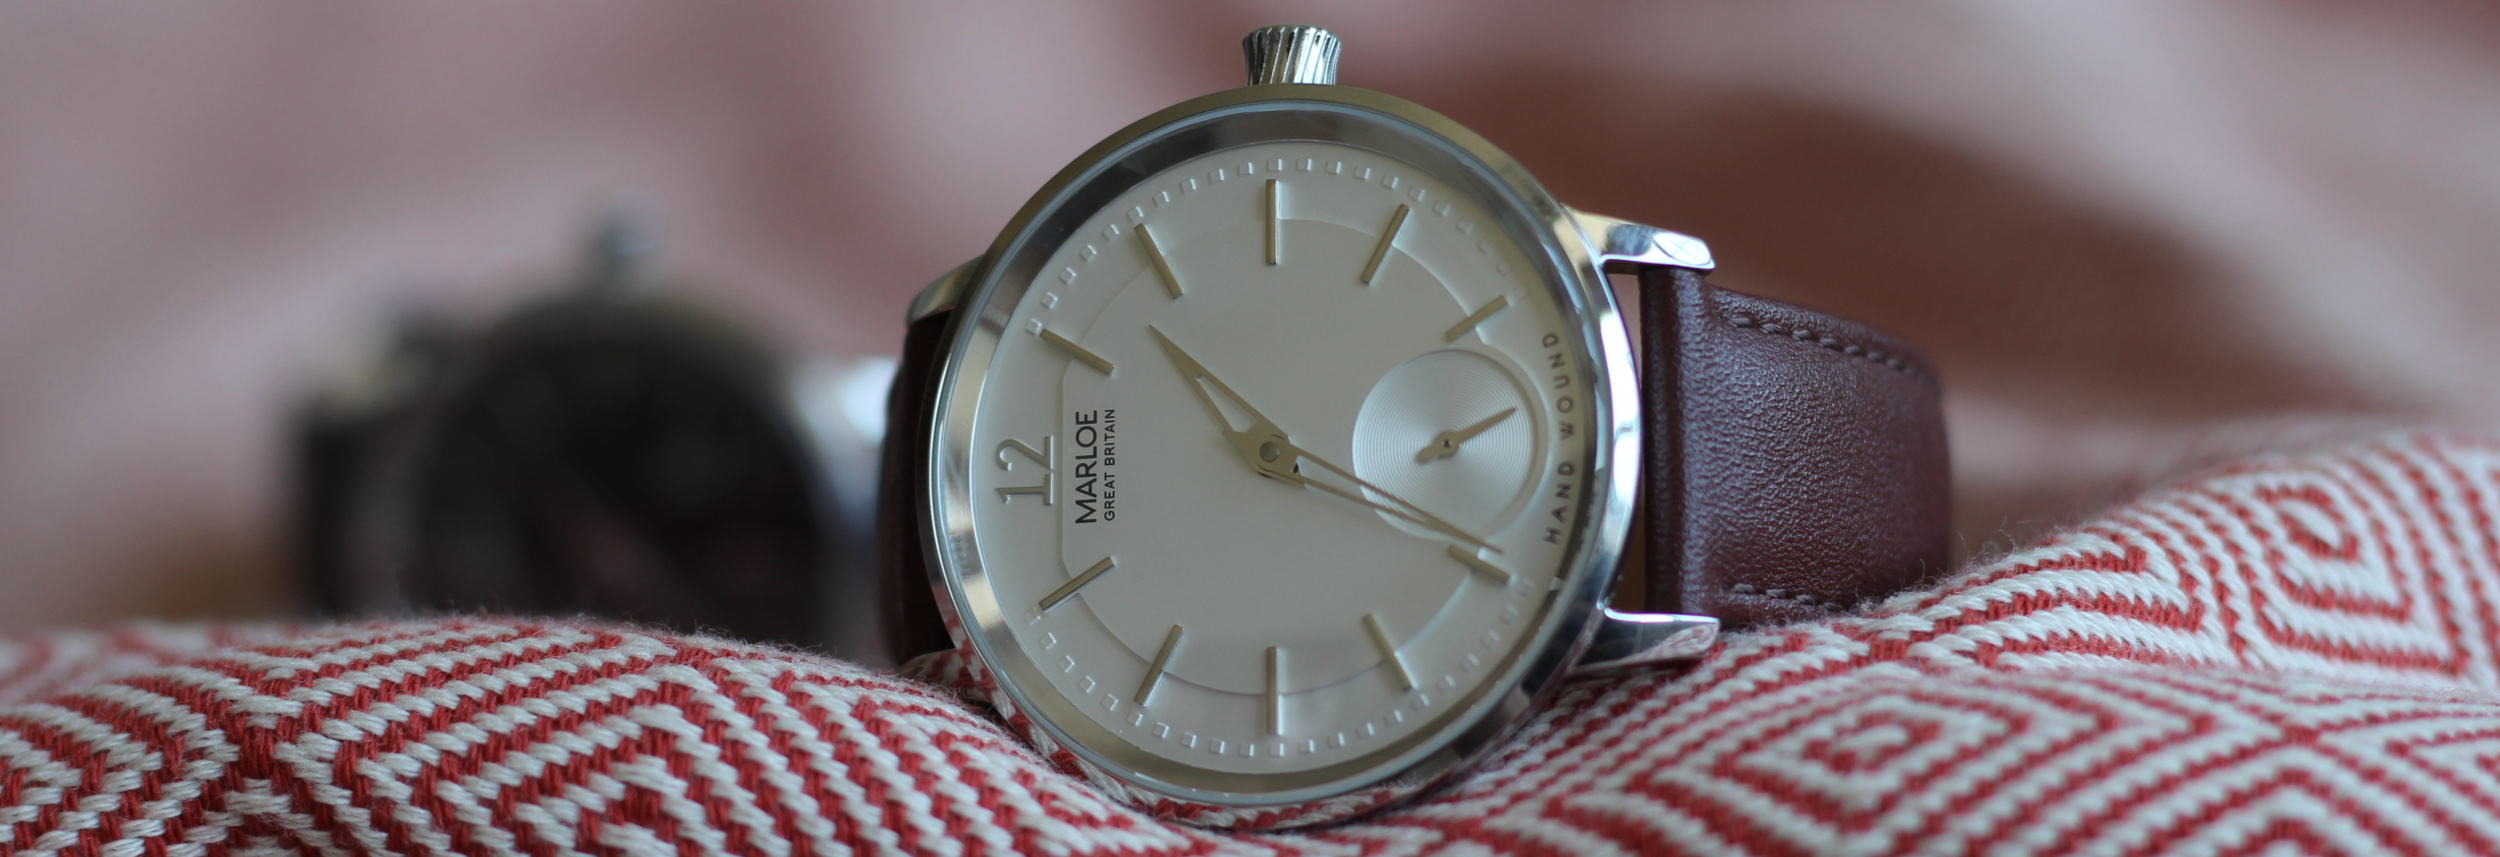 When I reviewed the Cherwell by Marloe Watch Company, I disclosed that I had communicated with the founder prior to the Kickstarter being launched as I felt I needed to make my audience aware.